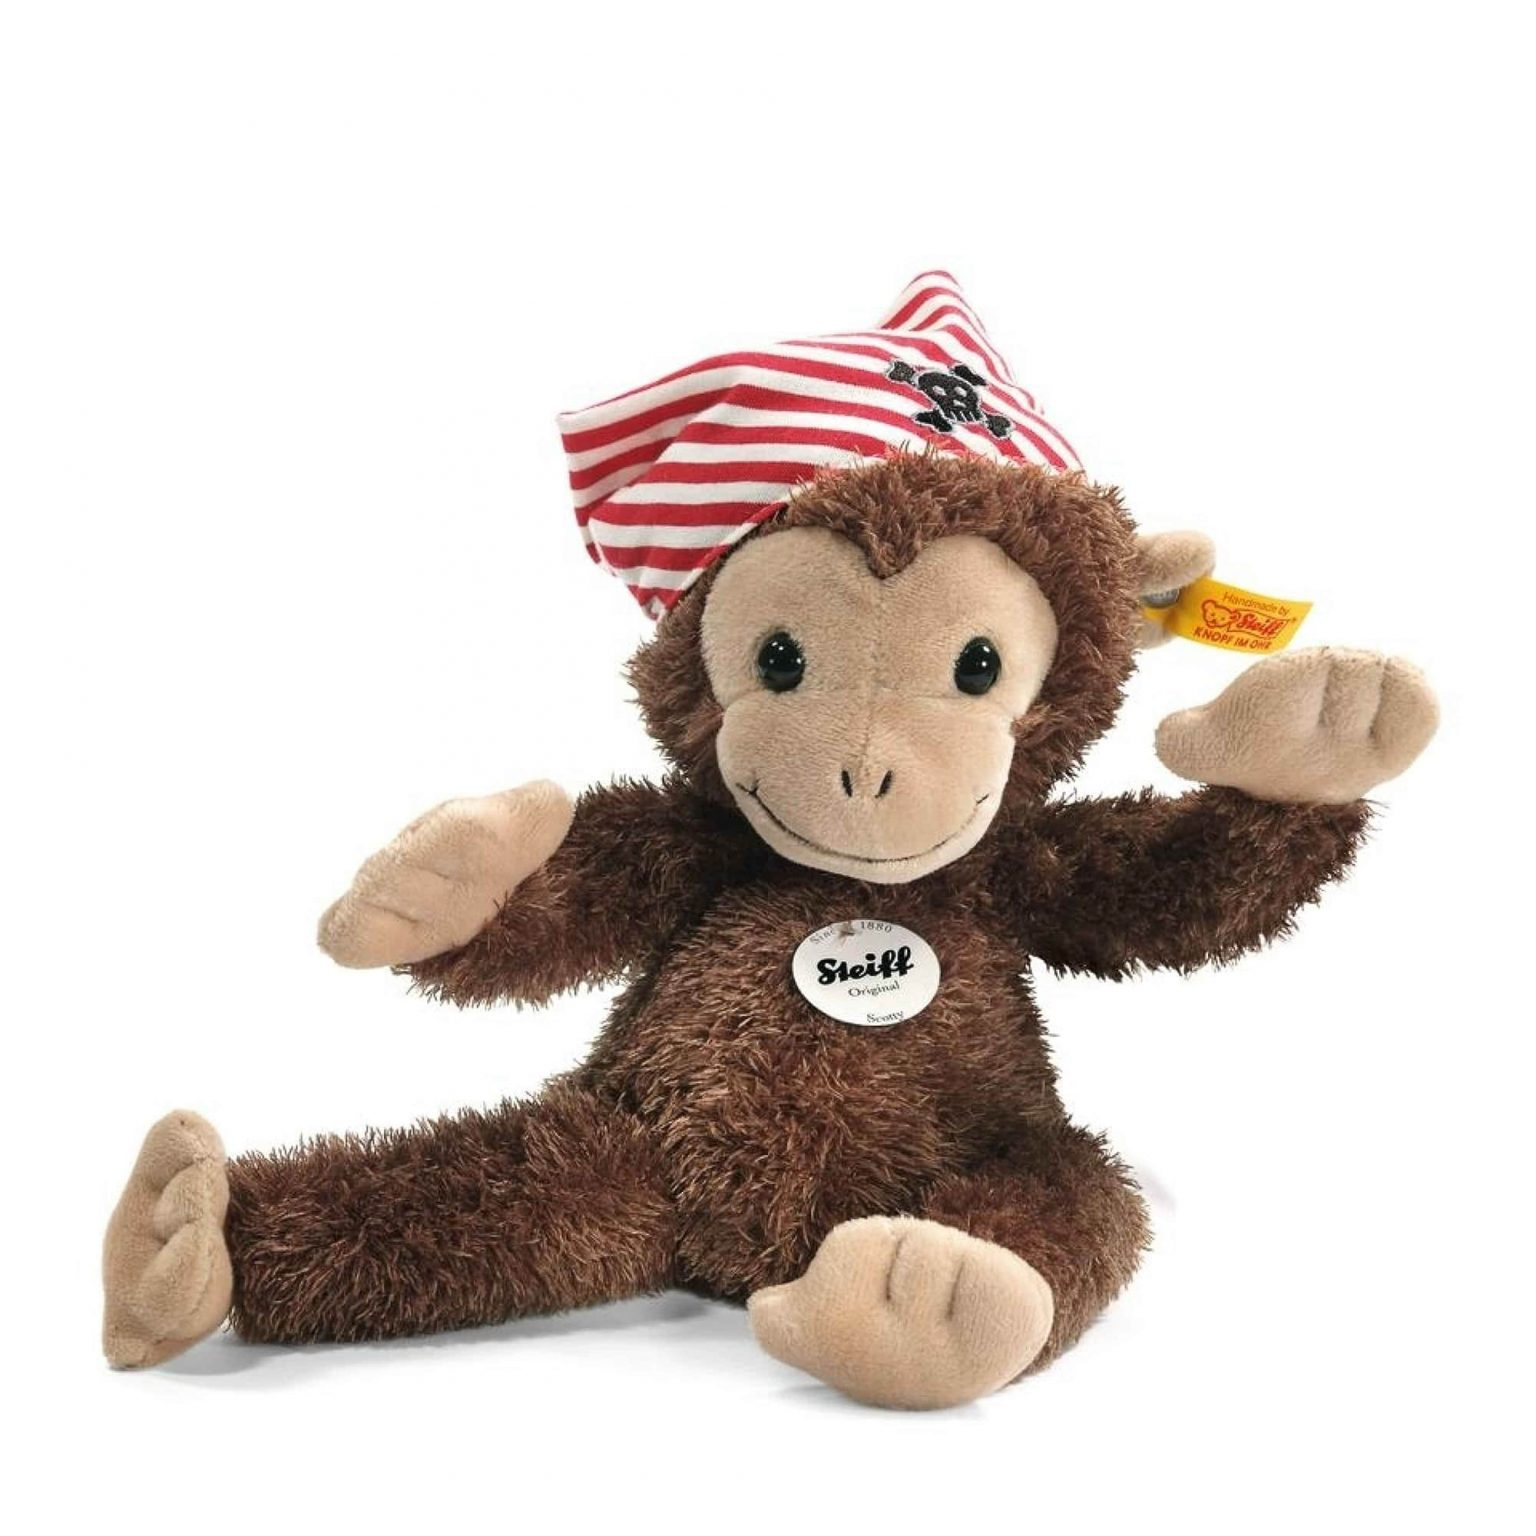 Scotty Monkey Steiff Teddy Bear Mary Shortle